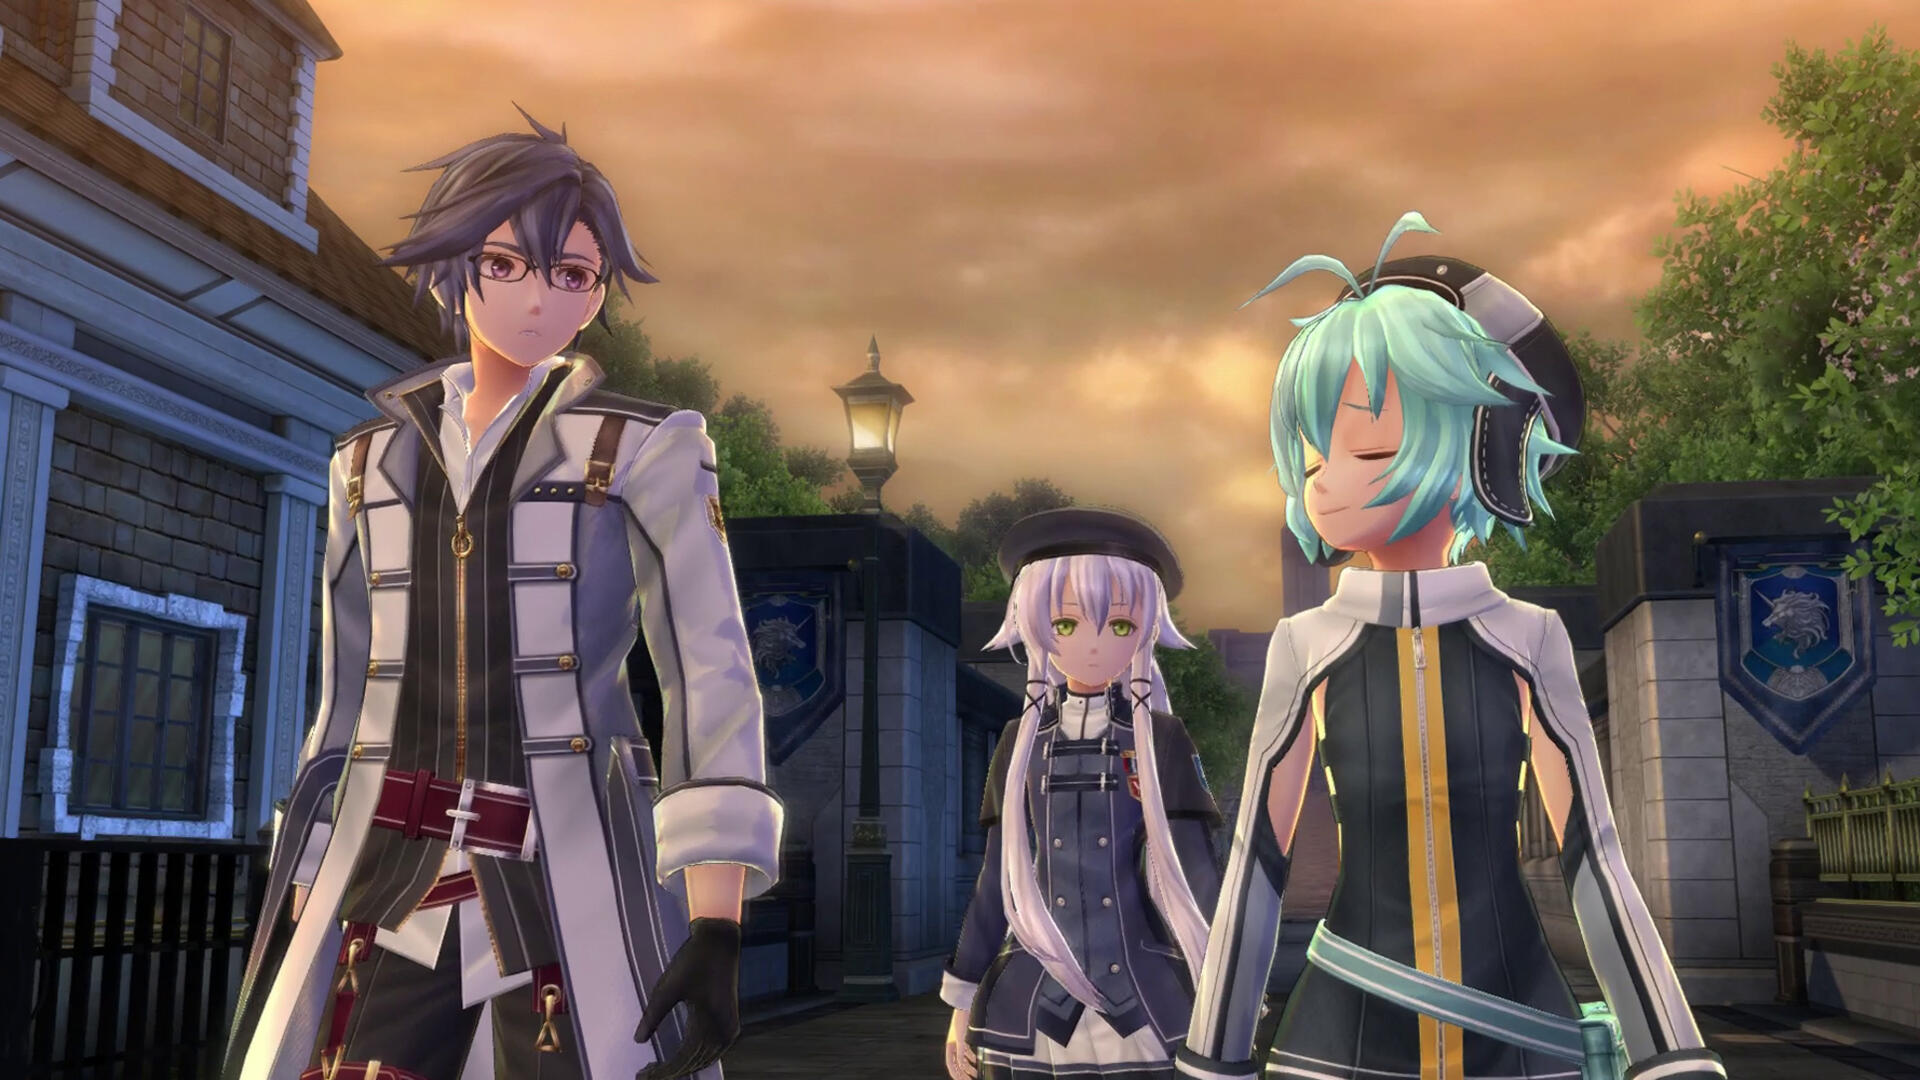 Nihon Falcom's President on Why It's Not Supporting Switch More, Lessons Learned From Ys 8, and Hopes for the Next 5 Years